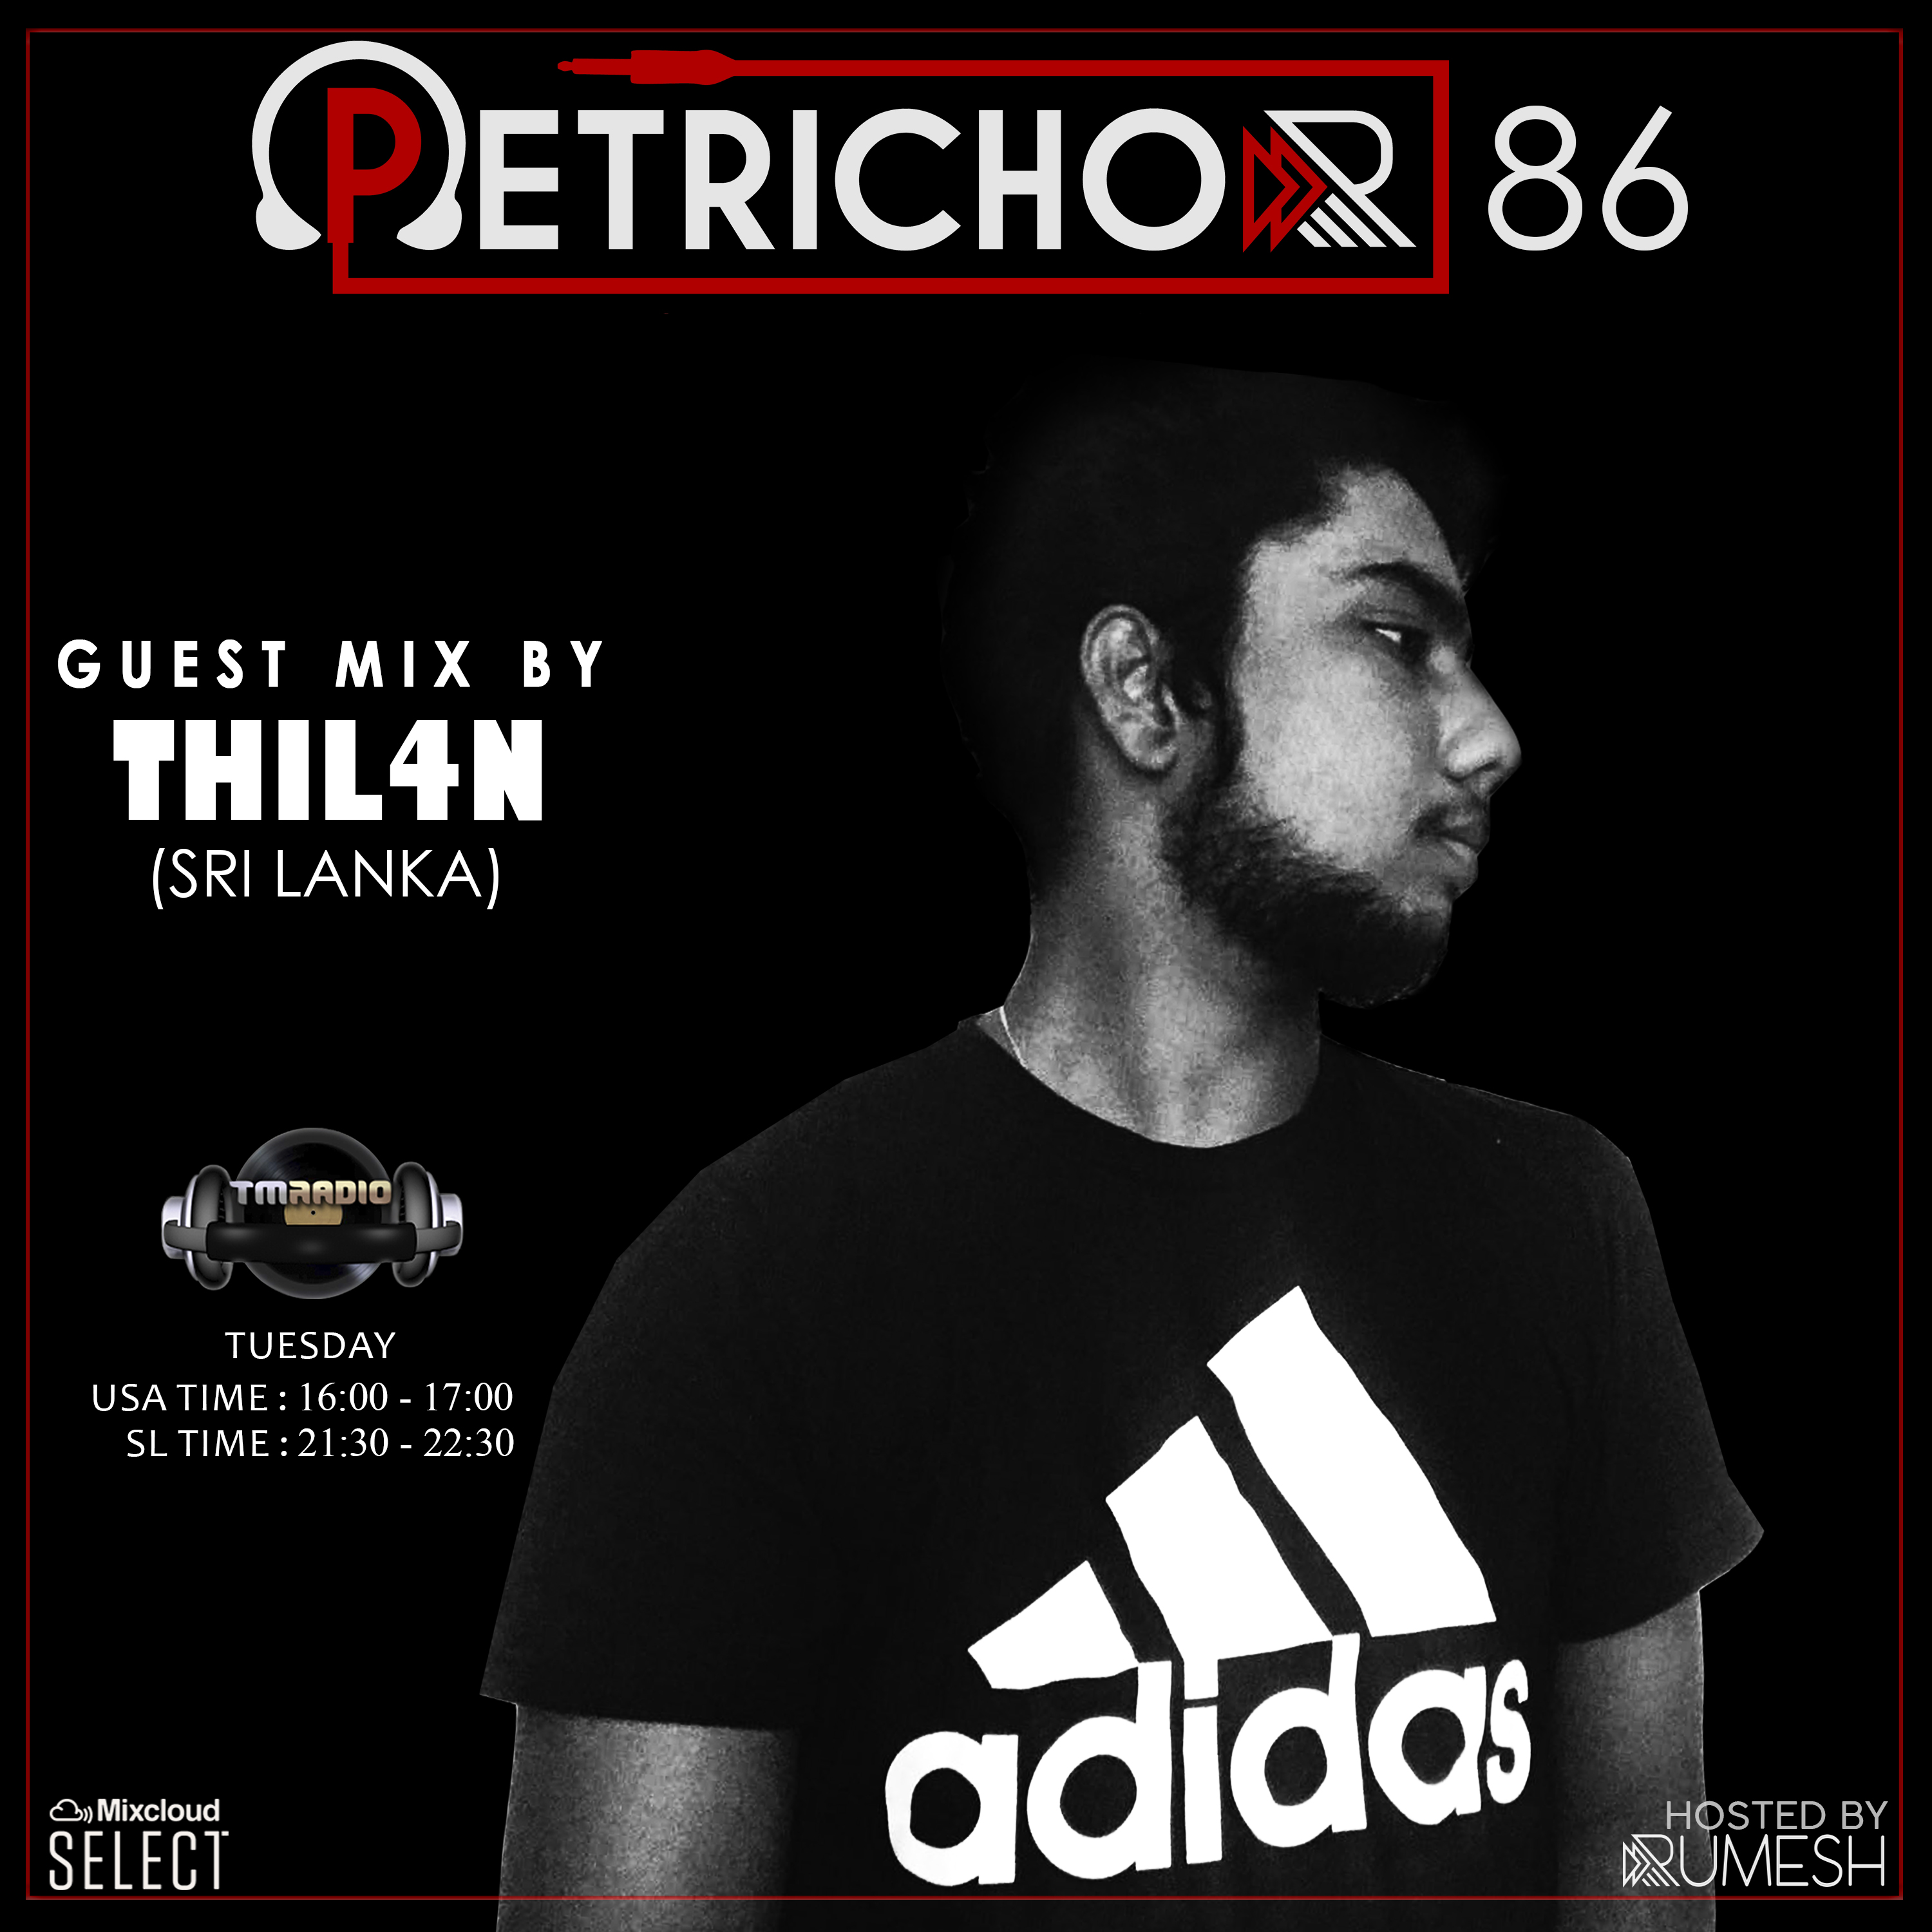 Petrichor :: Petrichor 86 guest mix by THIL4N (Sri Lanka) (aired on June 30th, 2020) banner logo